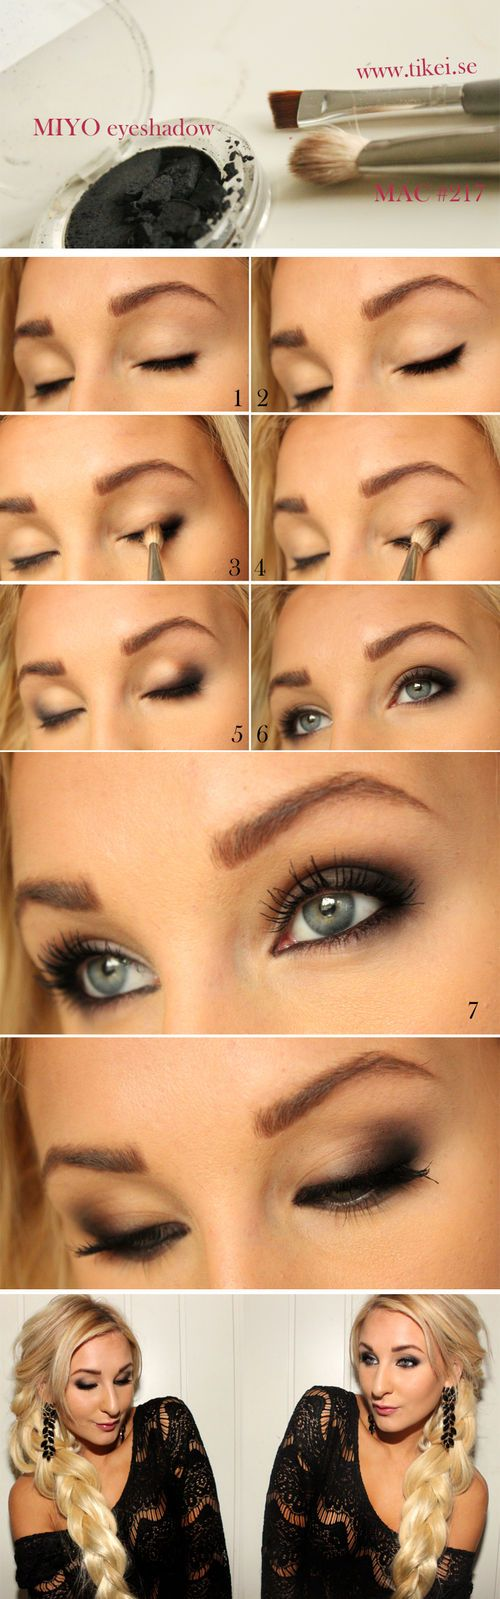 40   Amazing Smokey Eyes Makeup Tutorials / WonderfulDIY.com on imgfave